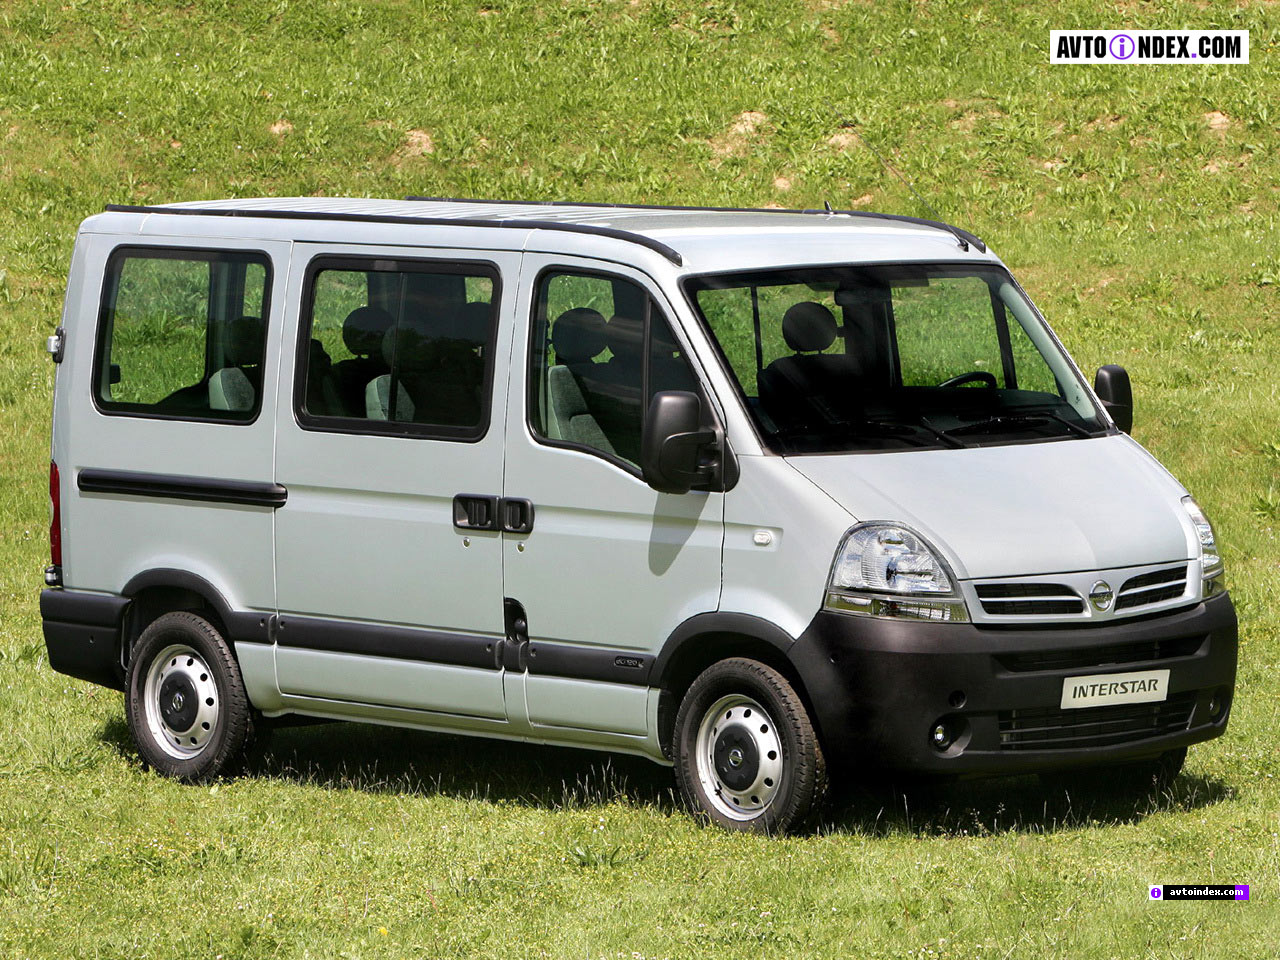 Nissan Interstar #7